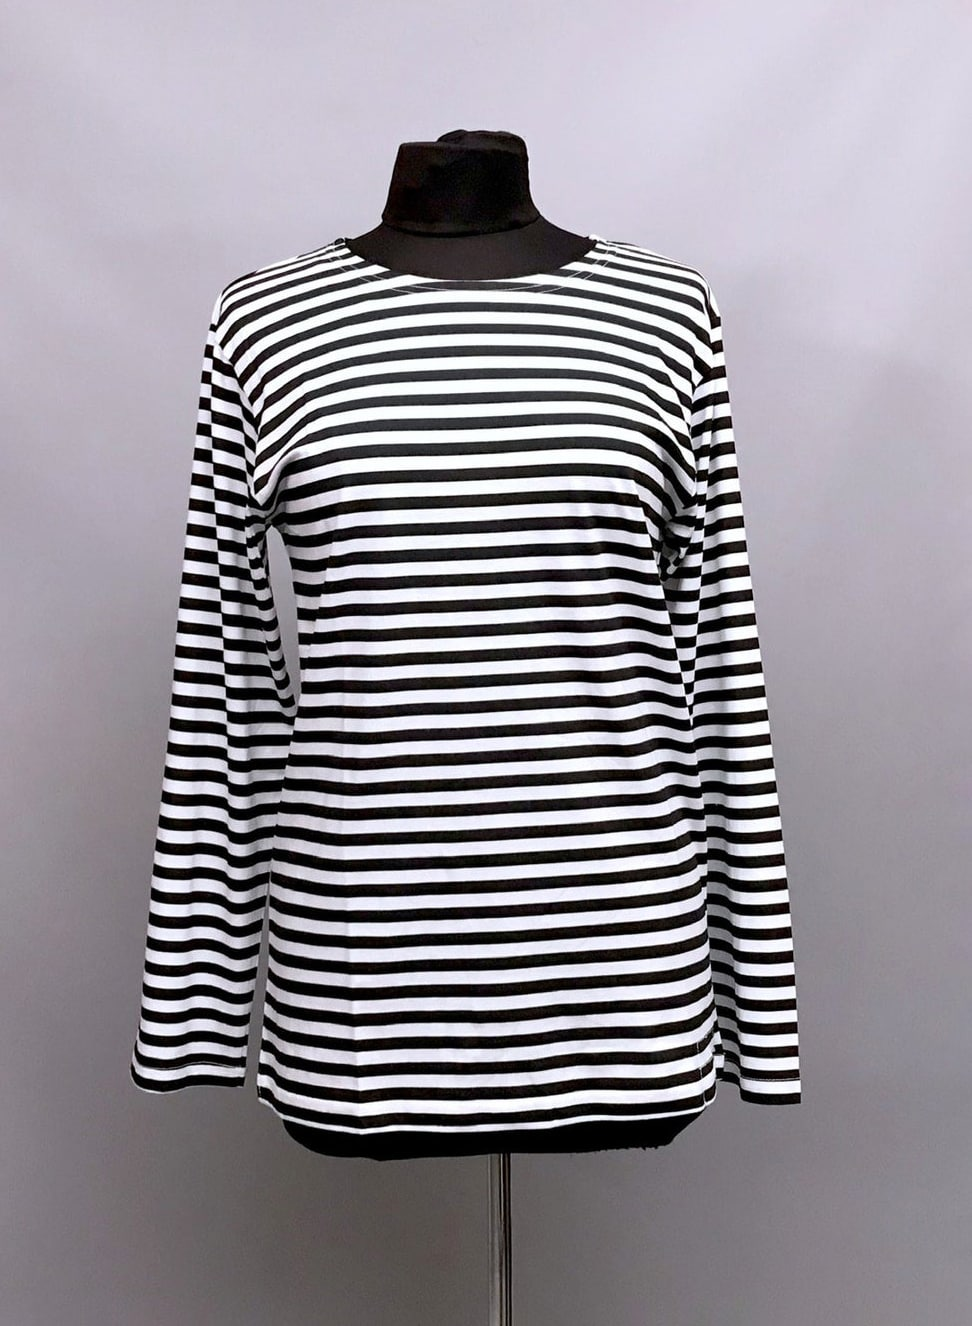 Black and White 100% cotton Breton Long Sleeve T-shirts - Unisex- Army Surplus - Russian Navy- cotton base layer